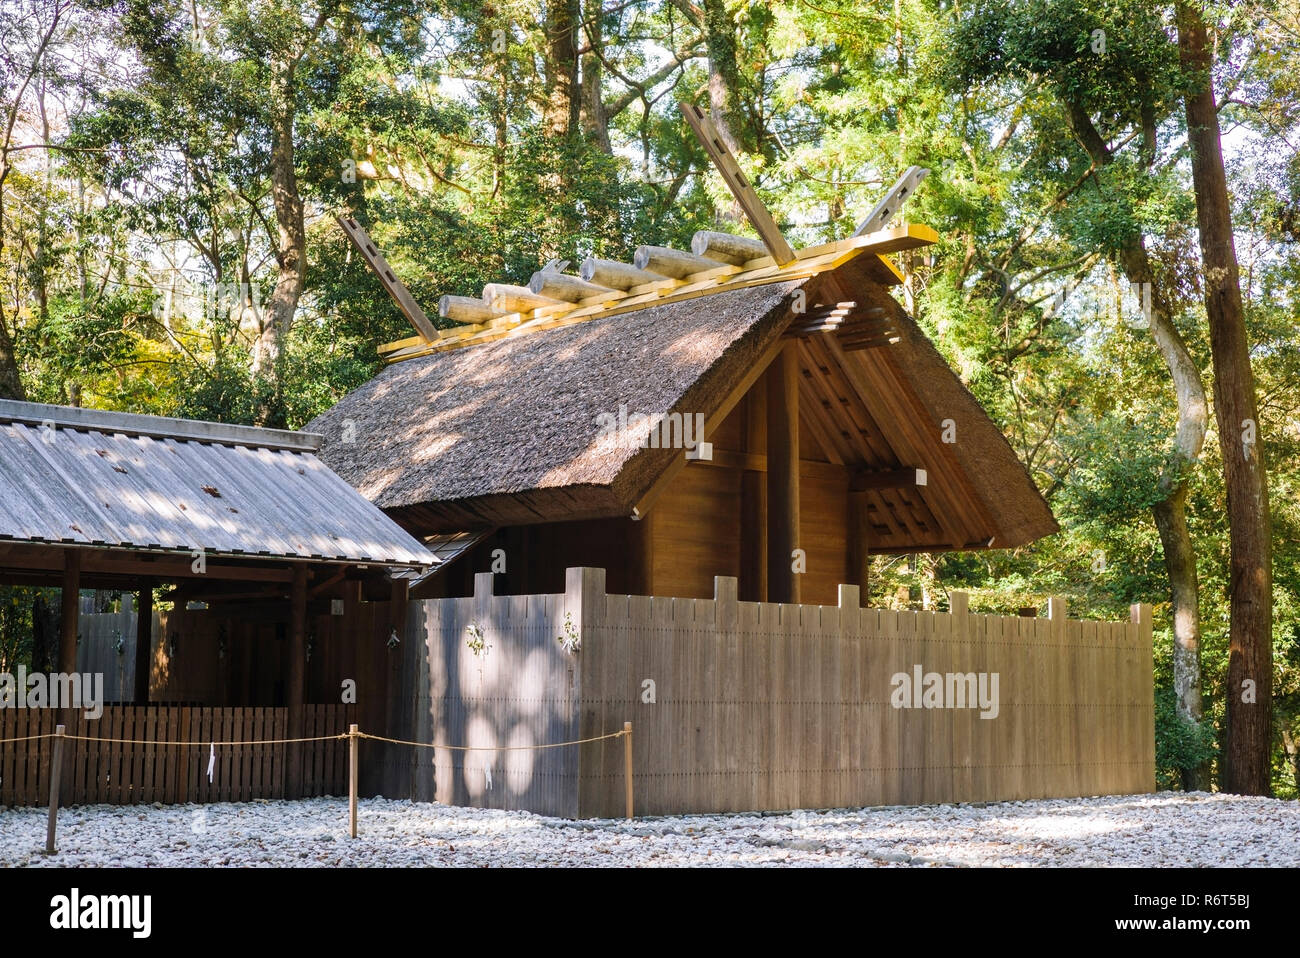 Ise Grand Shrine, Mie Prefecture, Japan: Side shrine of the Inner Shrine (Naiku), exhibiting the particular Shinmei-zukuri architectural style - Stock Image